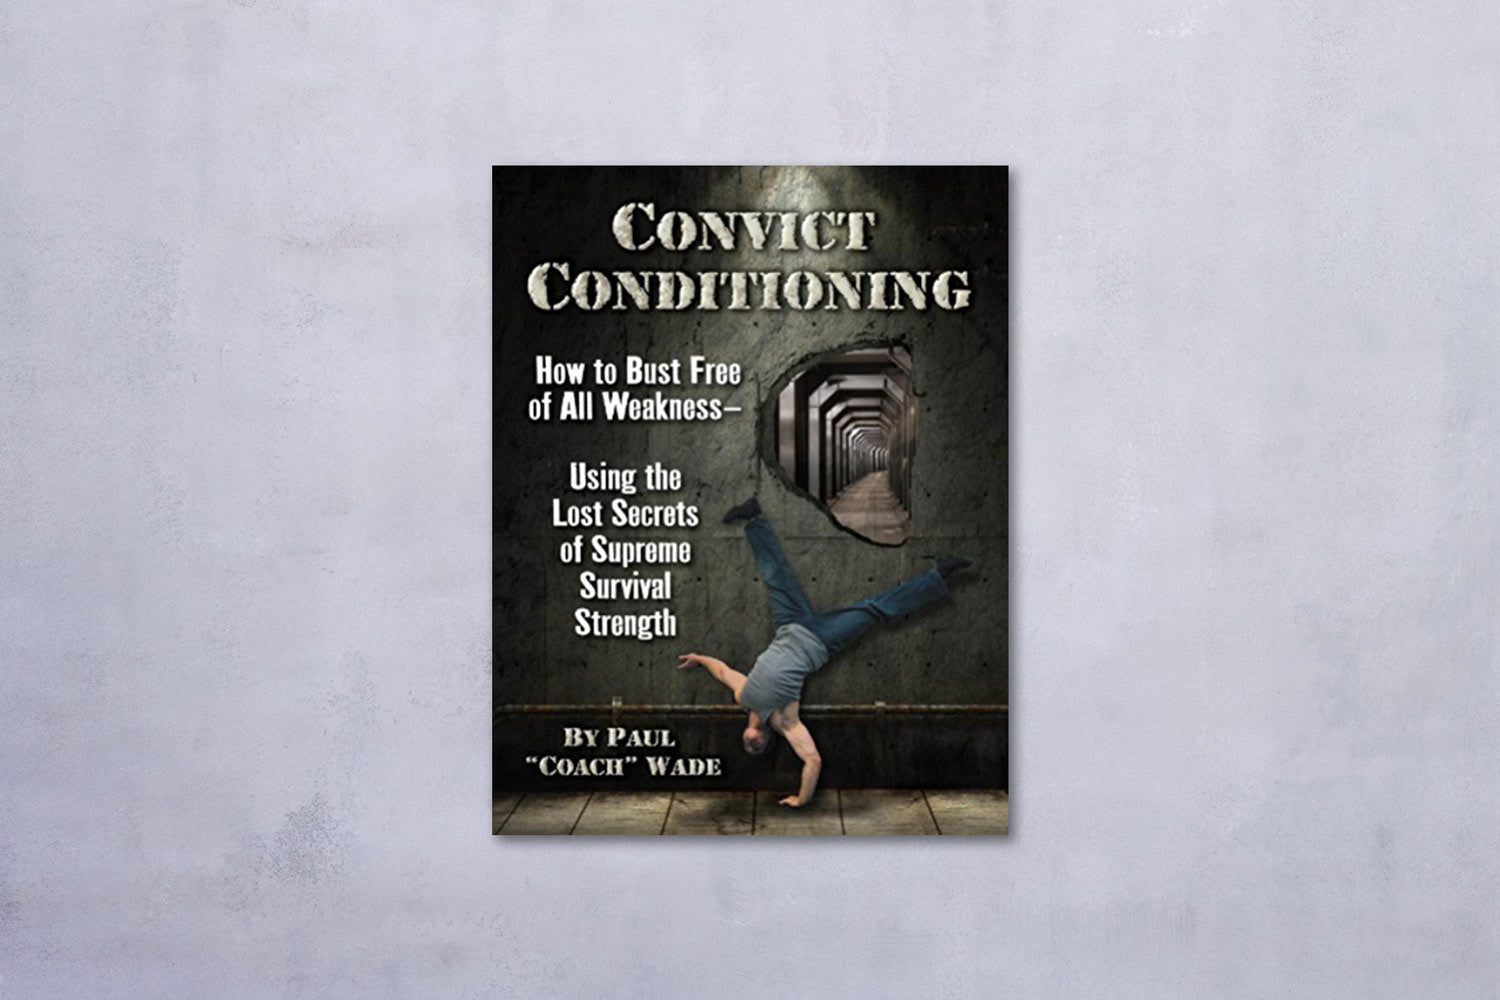 Convict Conditioning by Paul Wade book cover